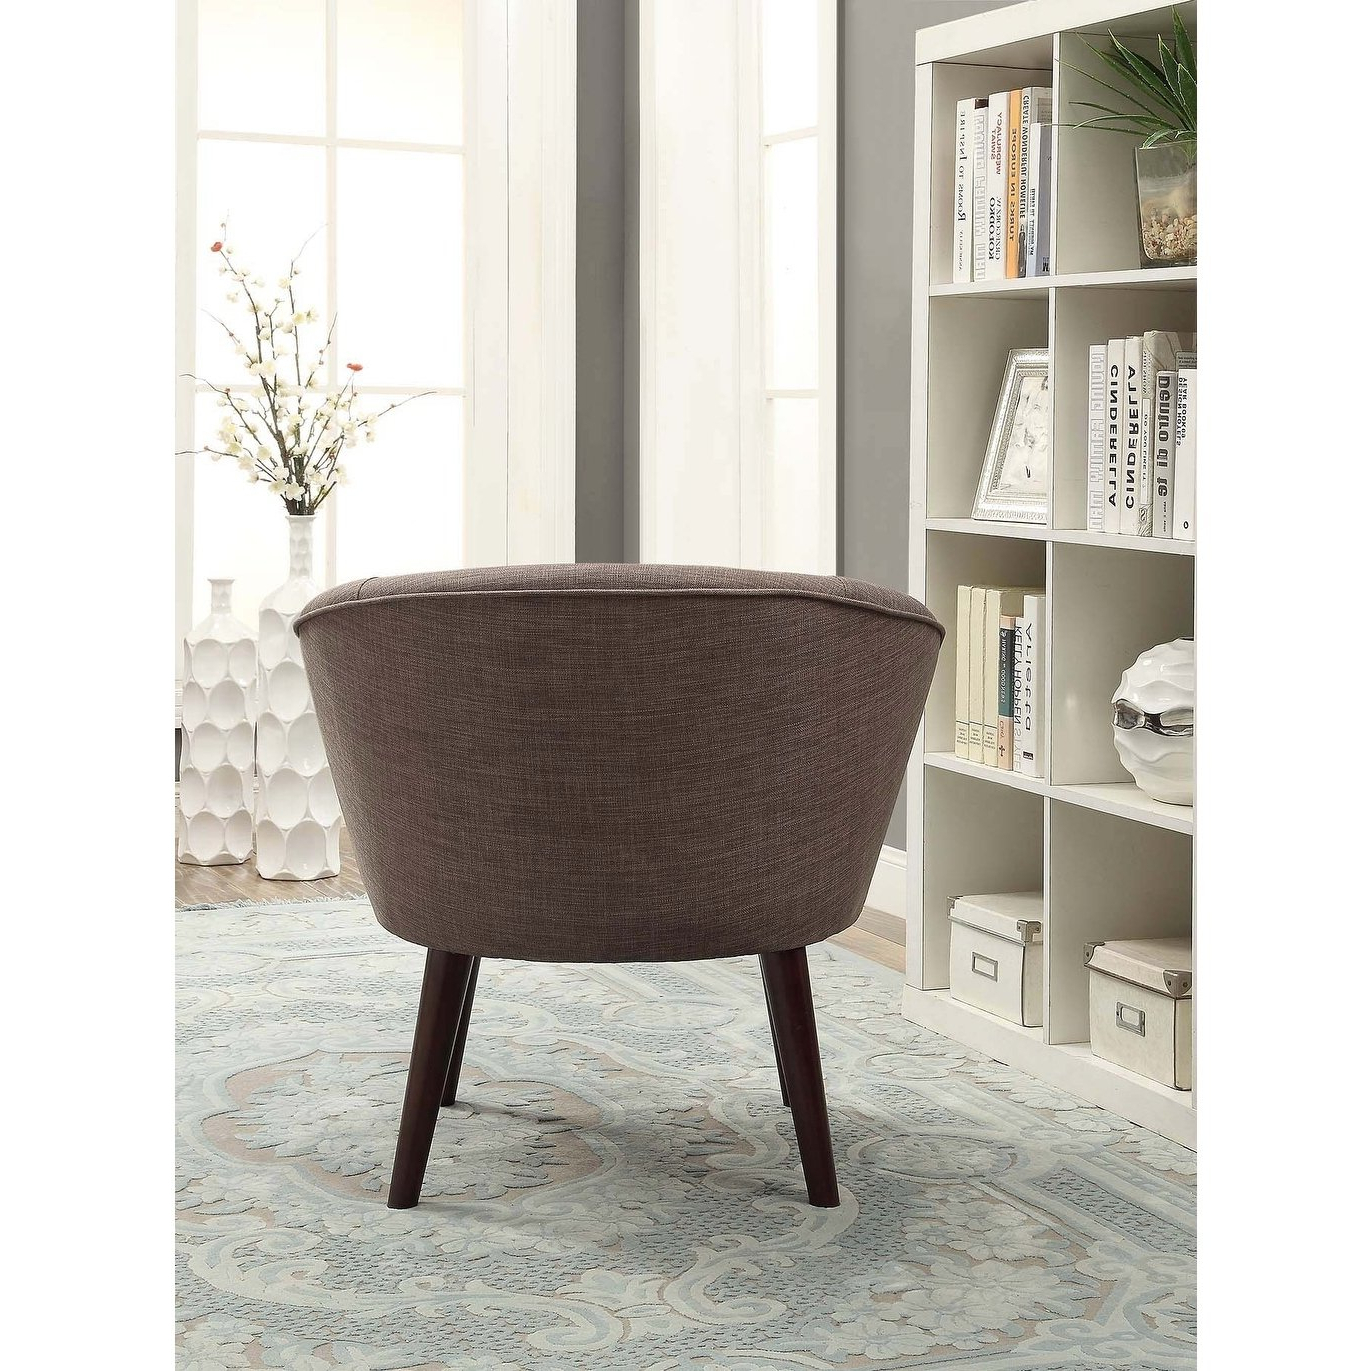 Shop Acme Amari Accent Chair In Stone Gray Linen – Free Shipping With Regard To Most Recent Amari Swivel Accent Chairs (View 10 of 20)